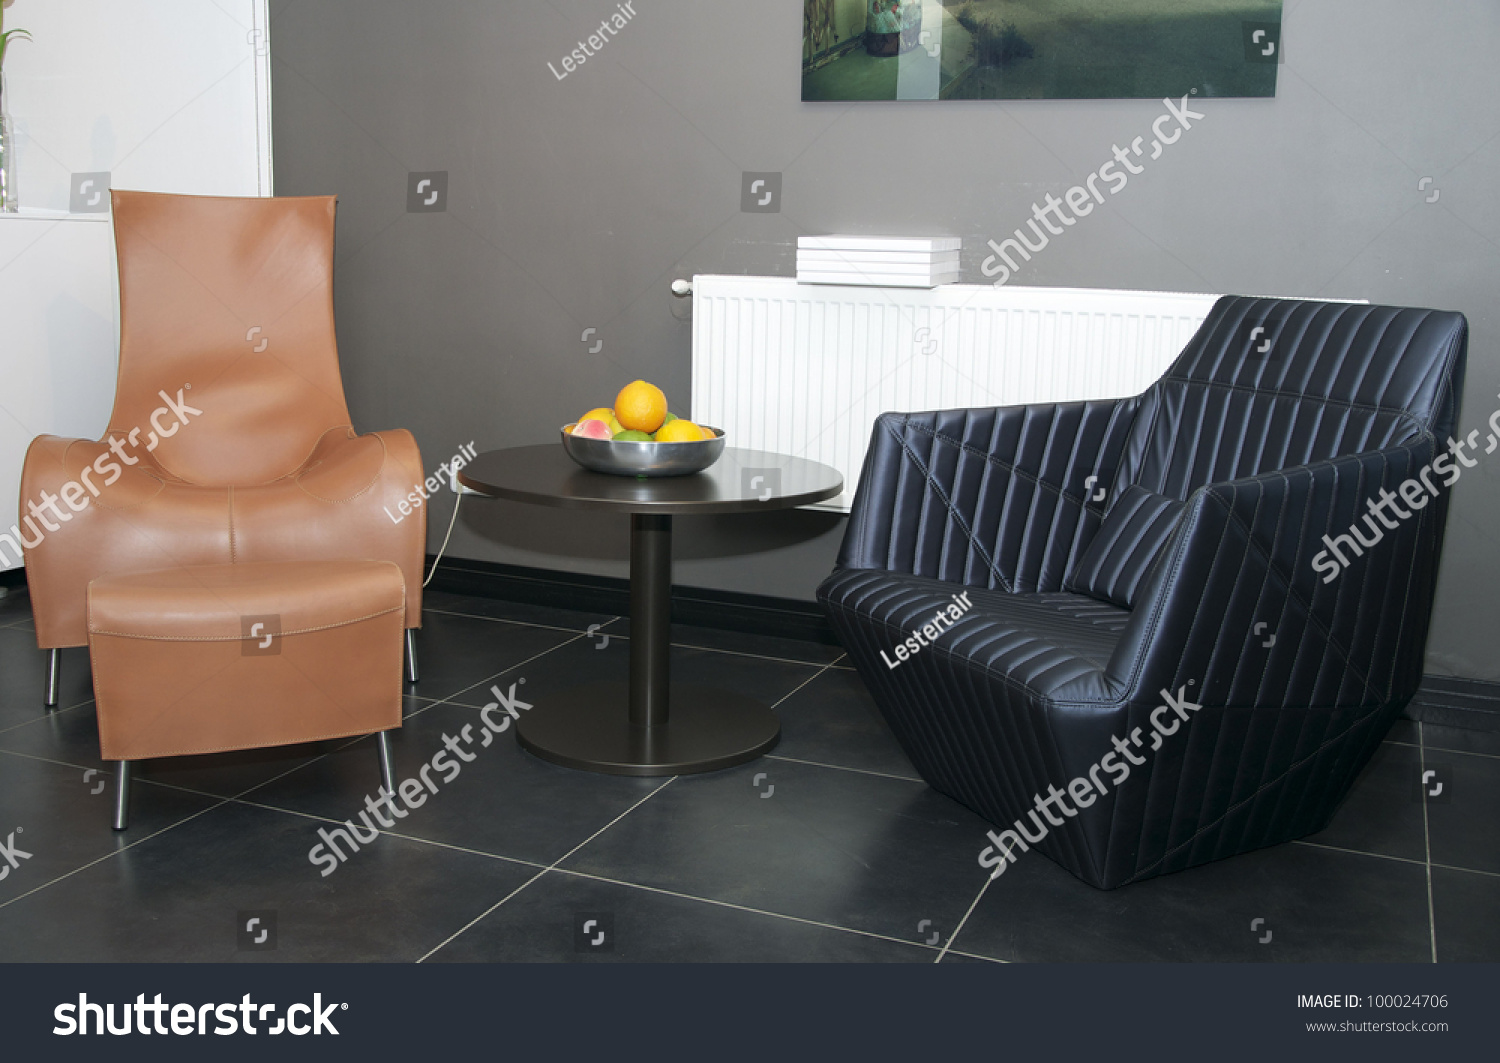 Two Chairs For Relaxing In The Living Room Beside The Table Stock Photo 100024706 Shutterstock